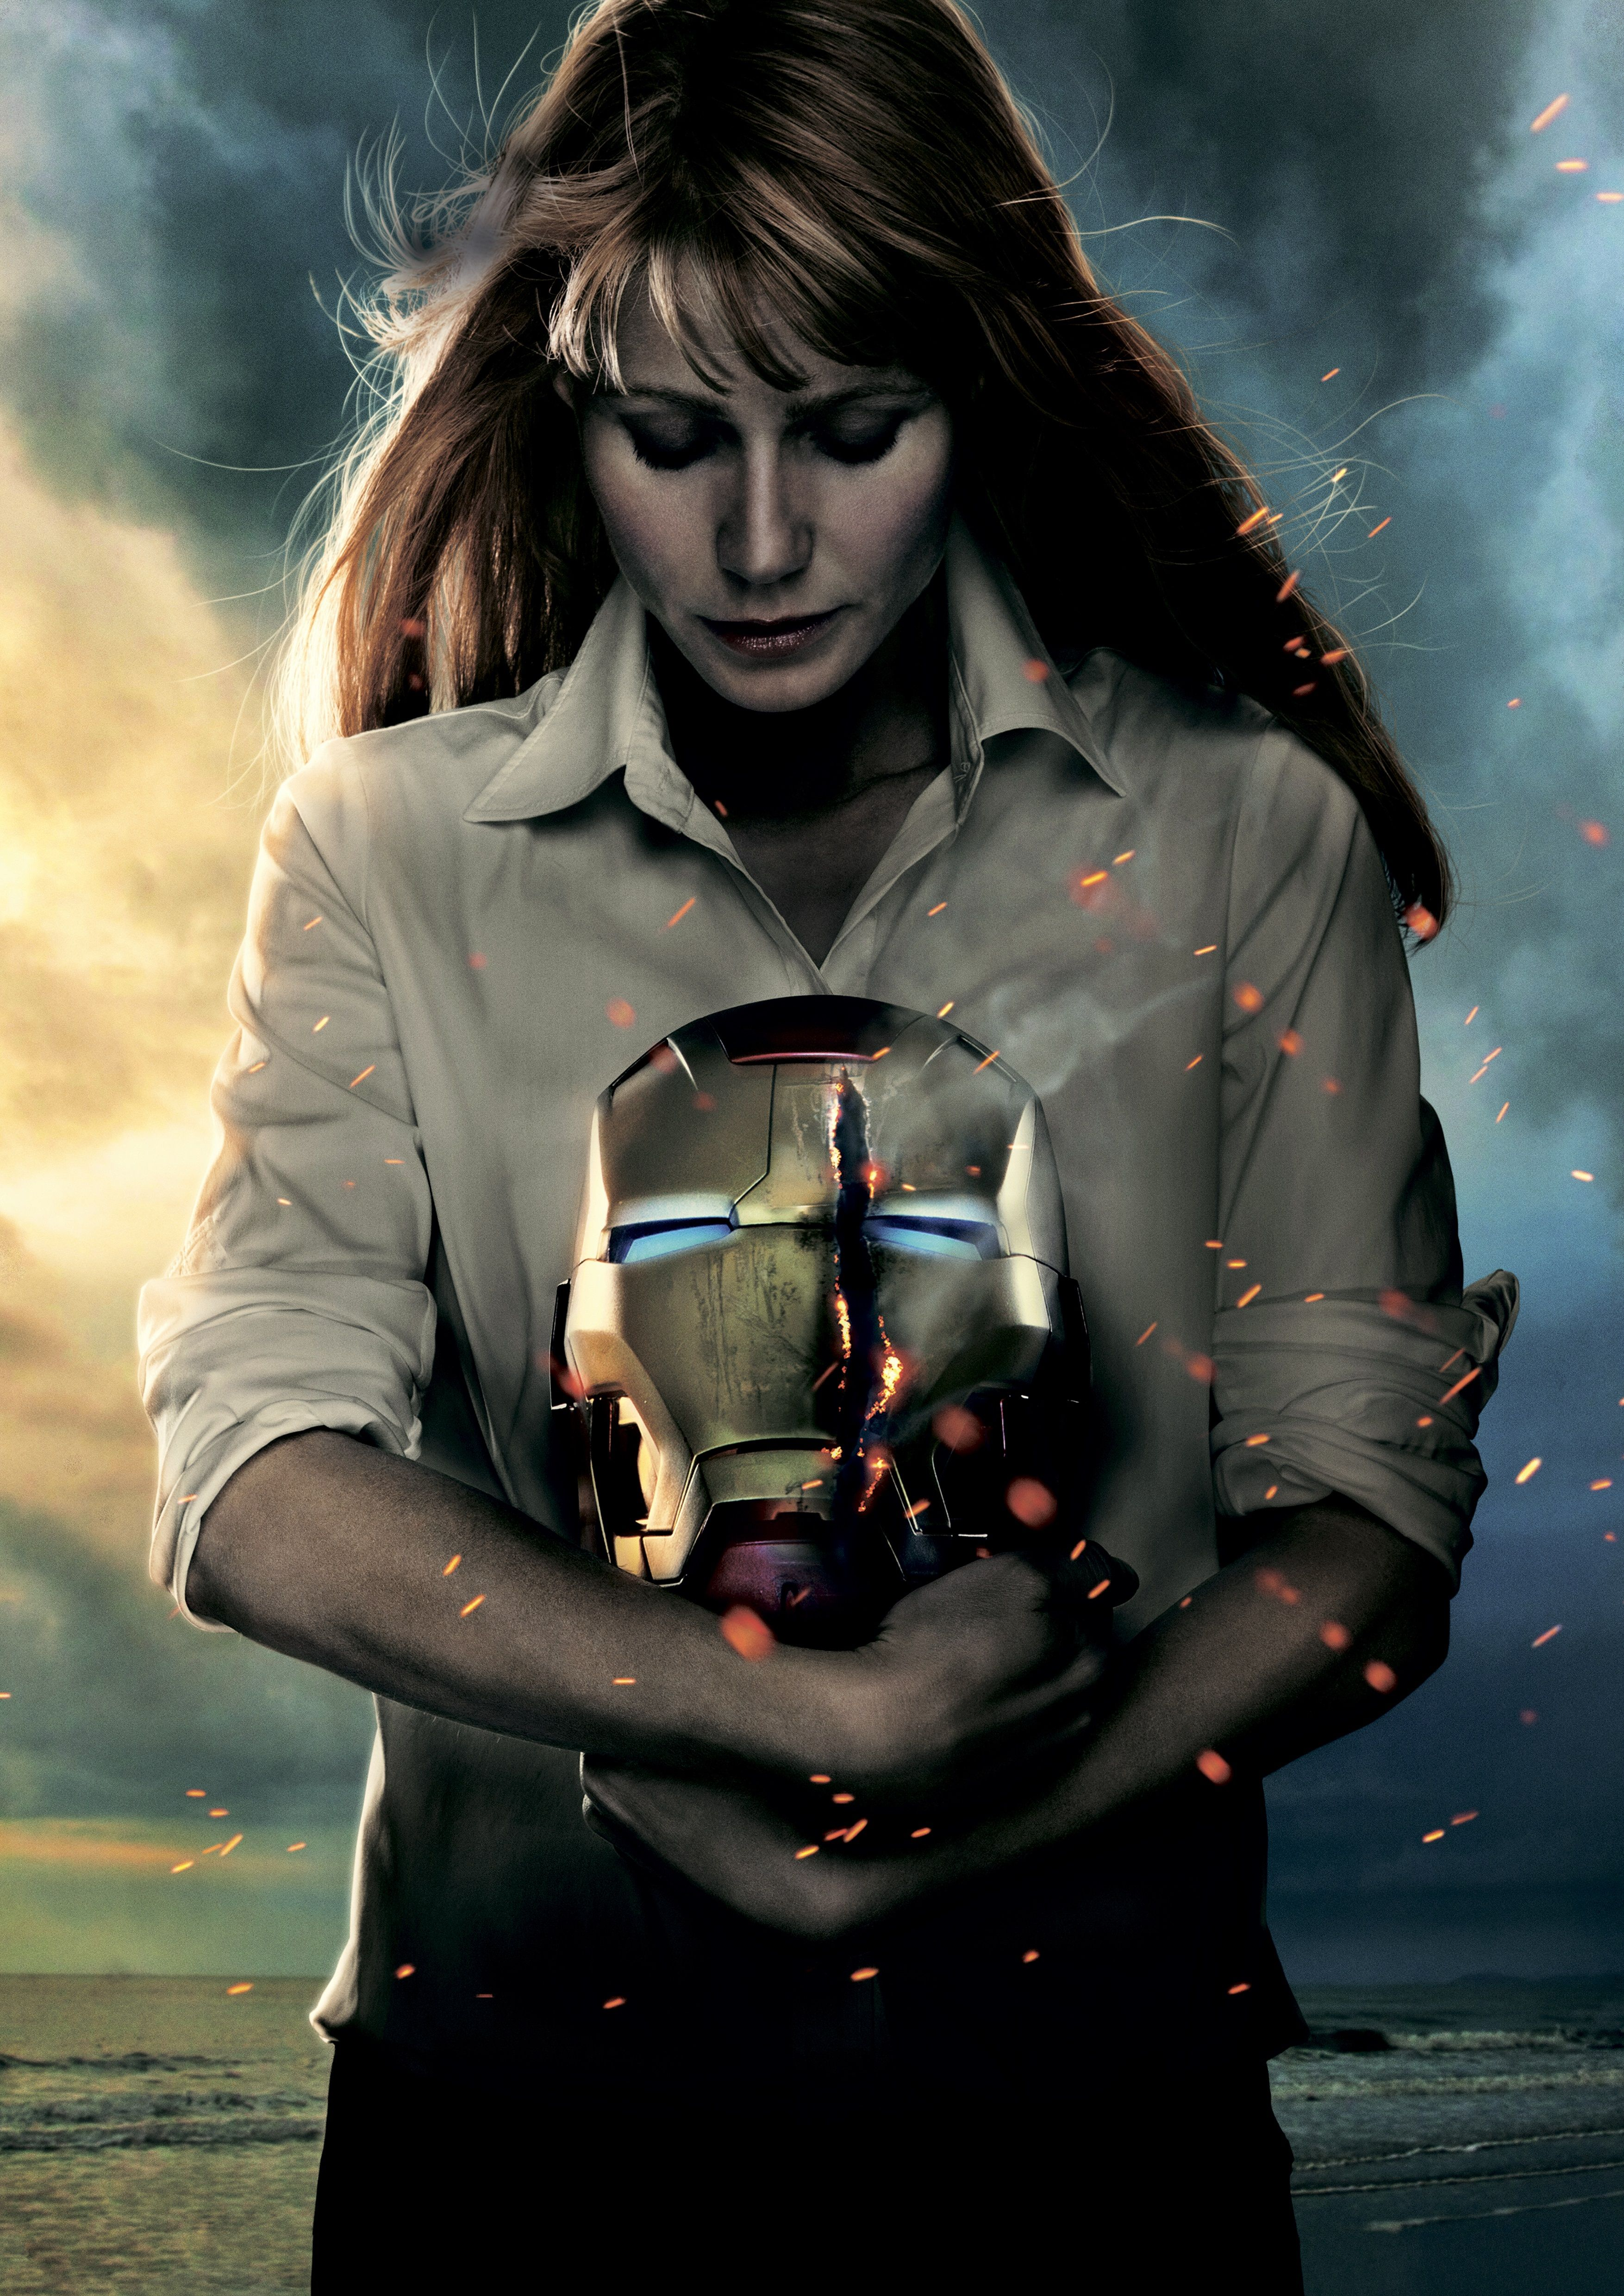 Iron Man 3 - Textless Movie Poster | Movie Promos, Stills ...